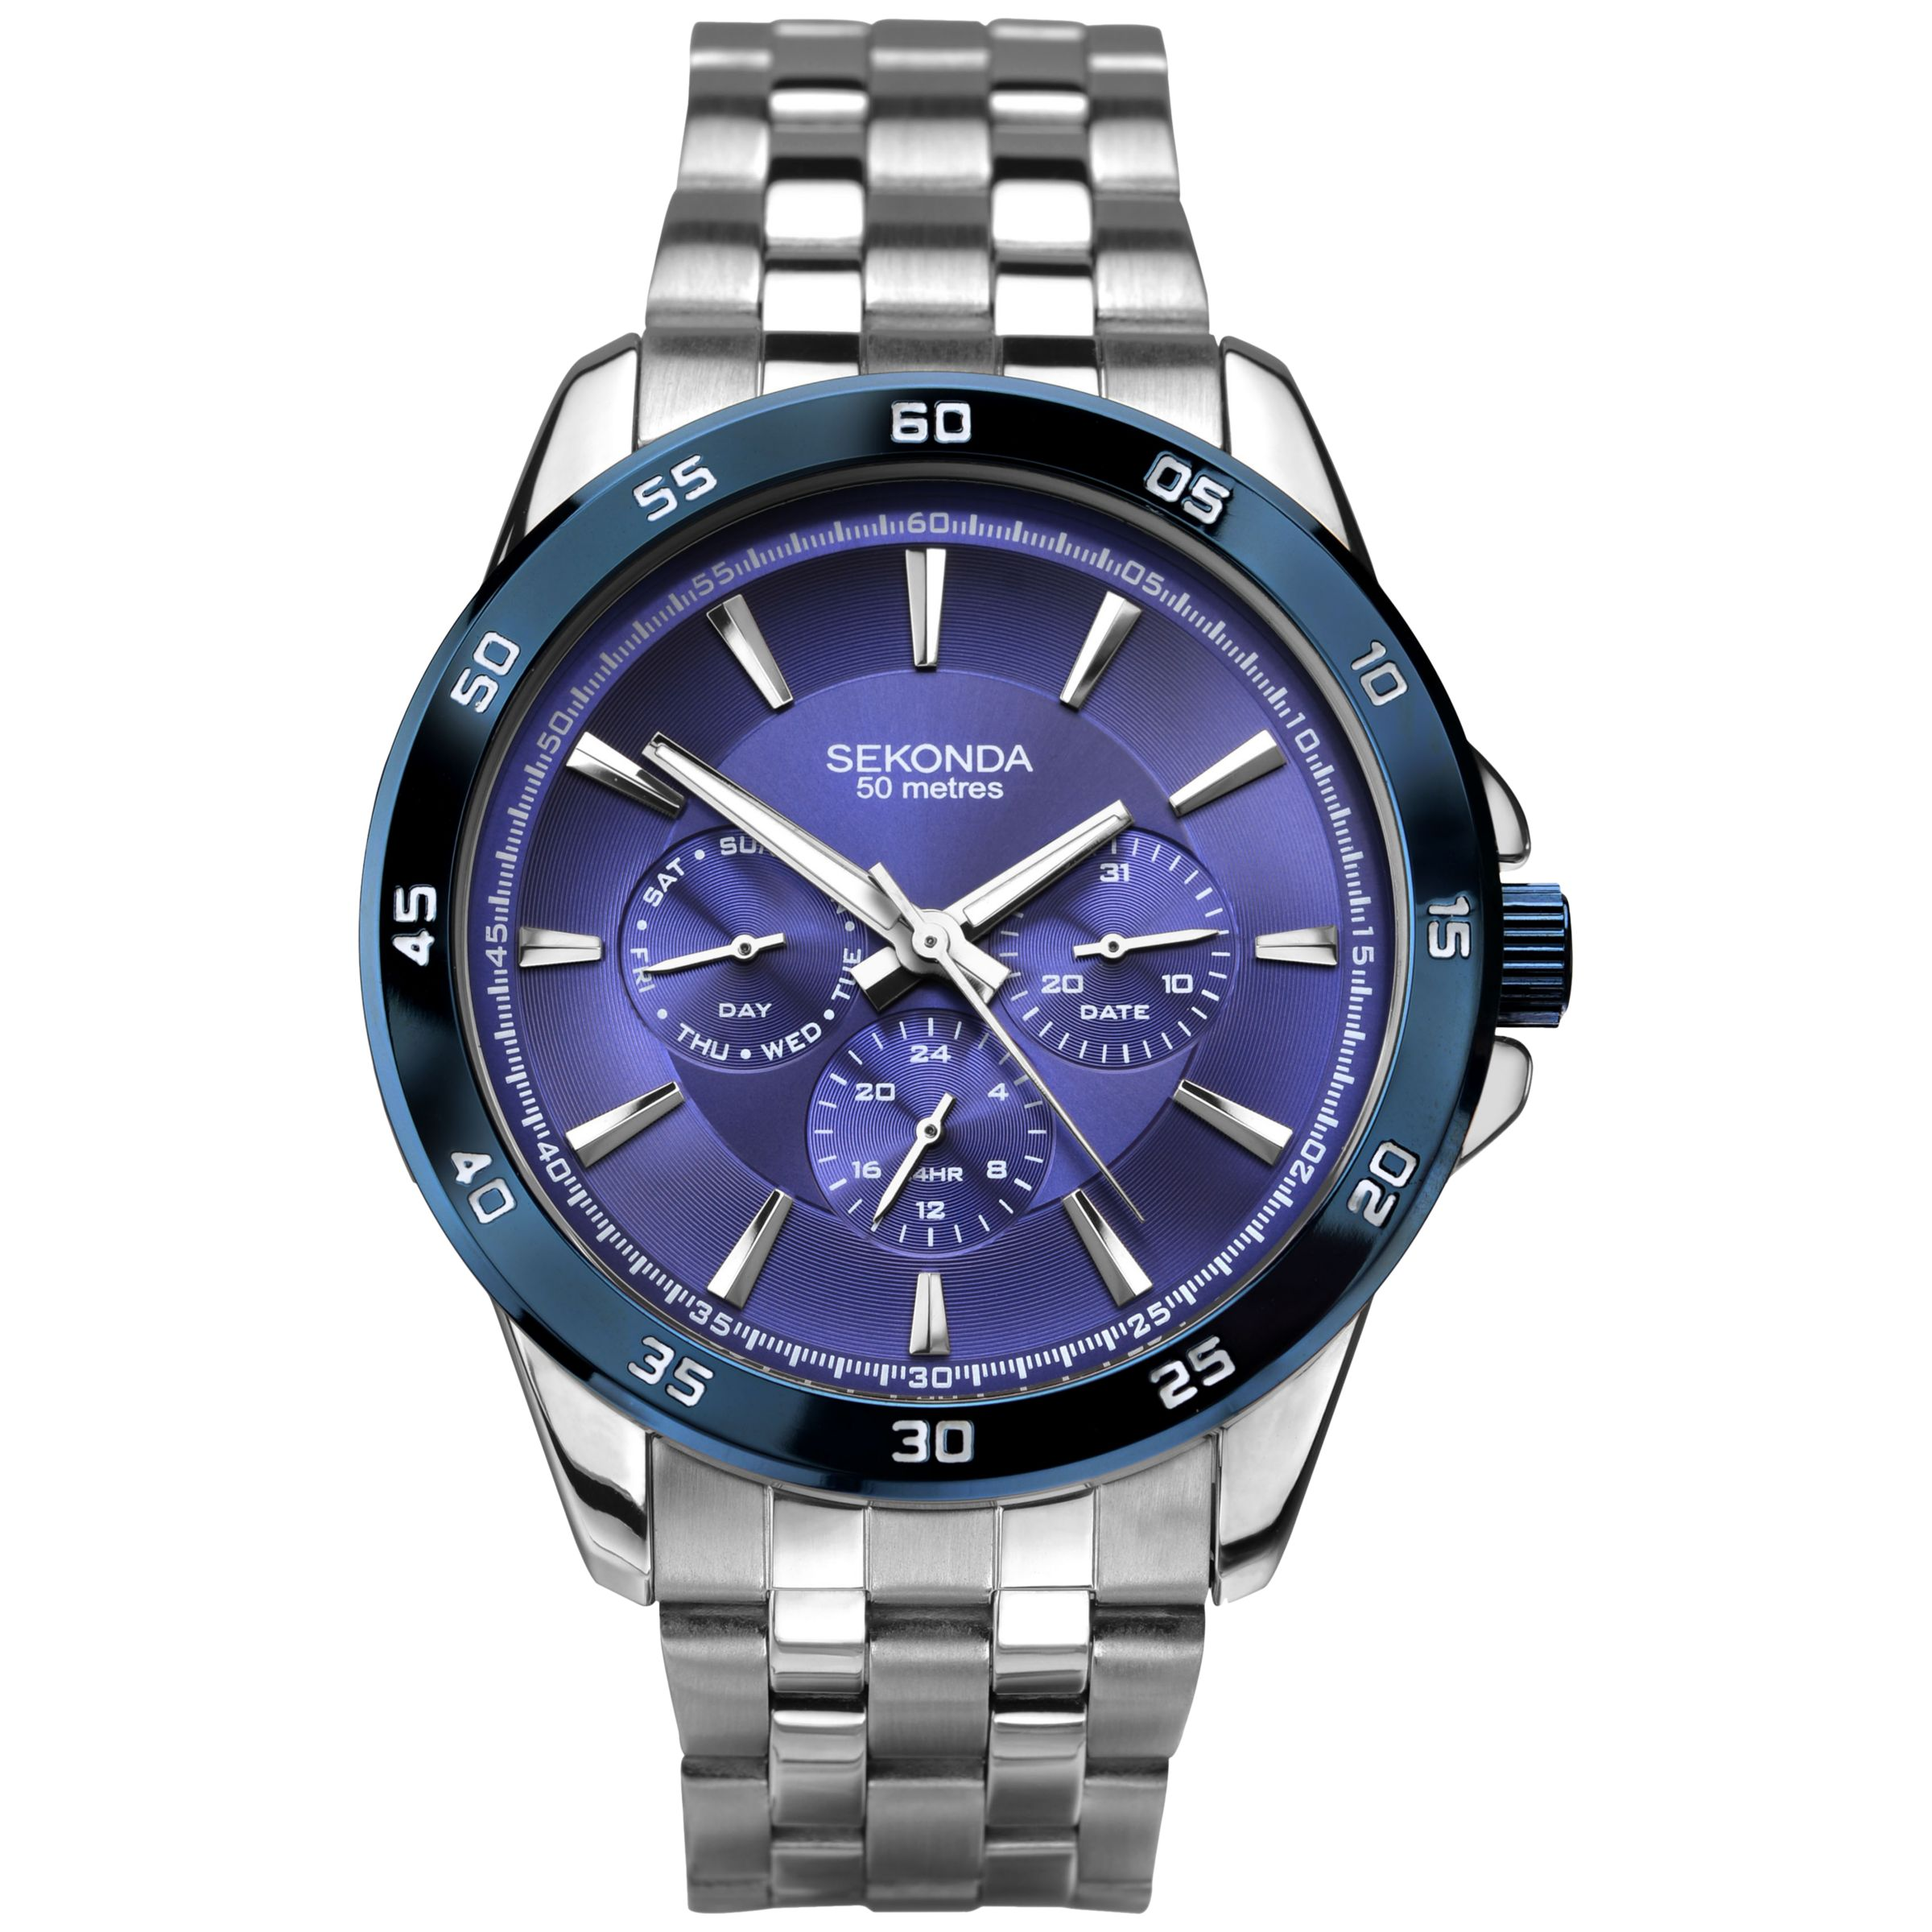 Sekonda Sekonda 1391.27 Men's Chronograph Bracelet Strap Watch, Silver/Blue